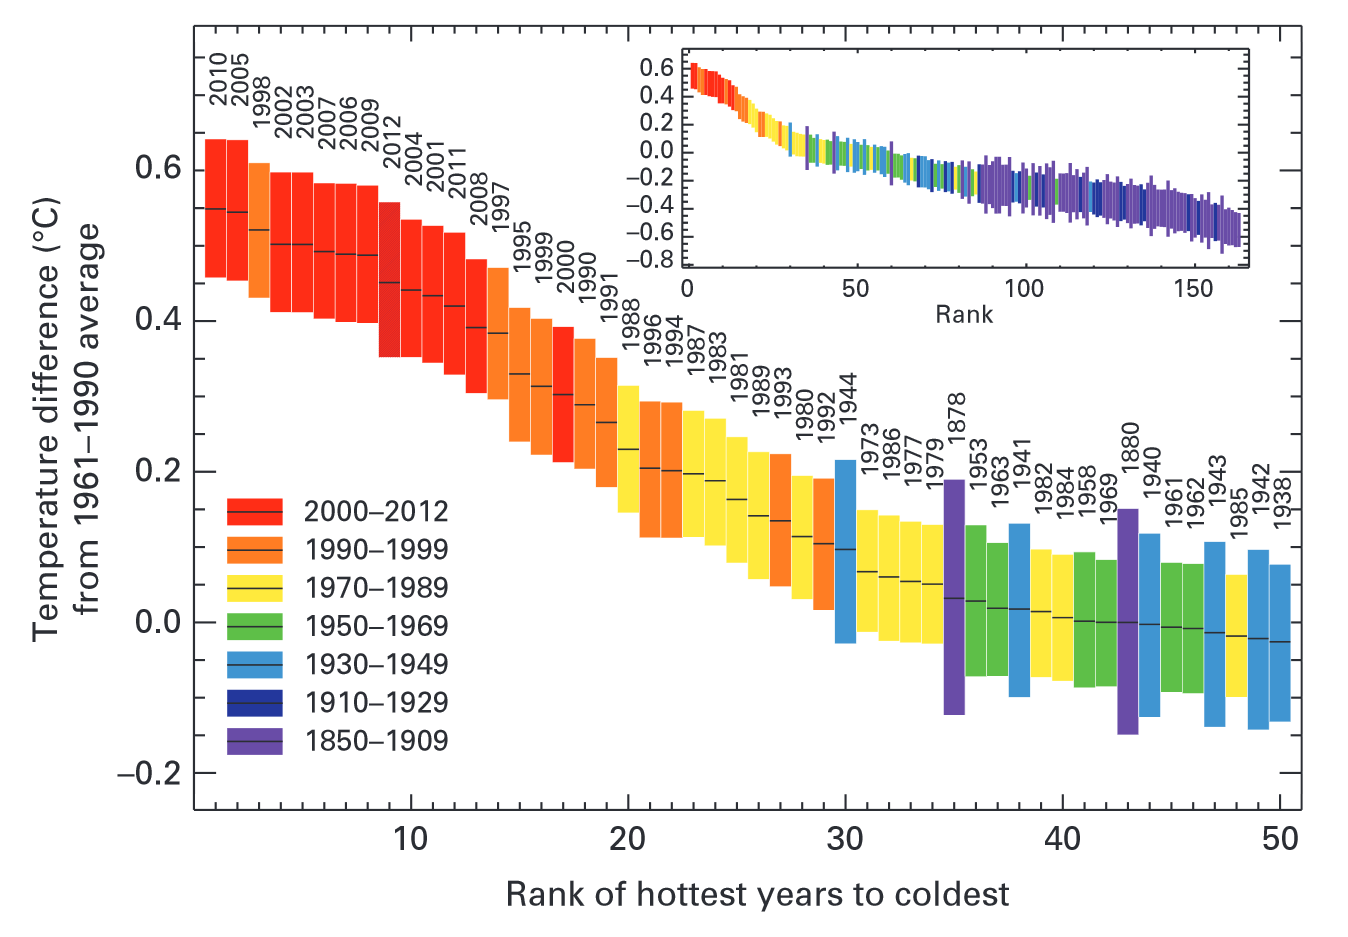 Daten & Fakten zum Klimawandel - Global Met Office Hadley Centre, UK, and Climatic Research Unit,